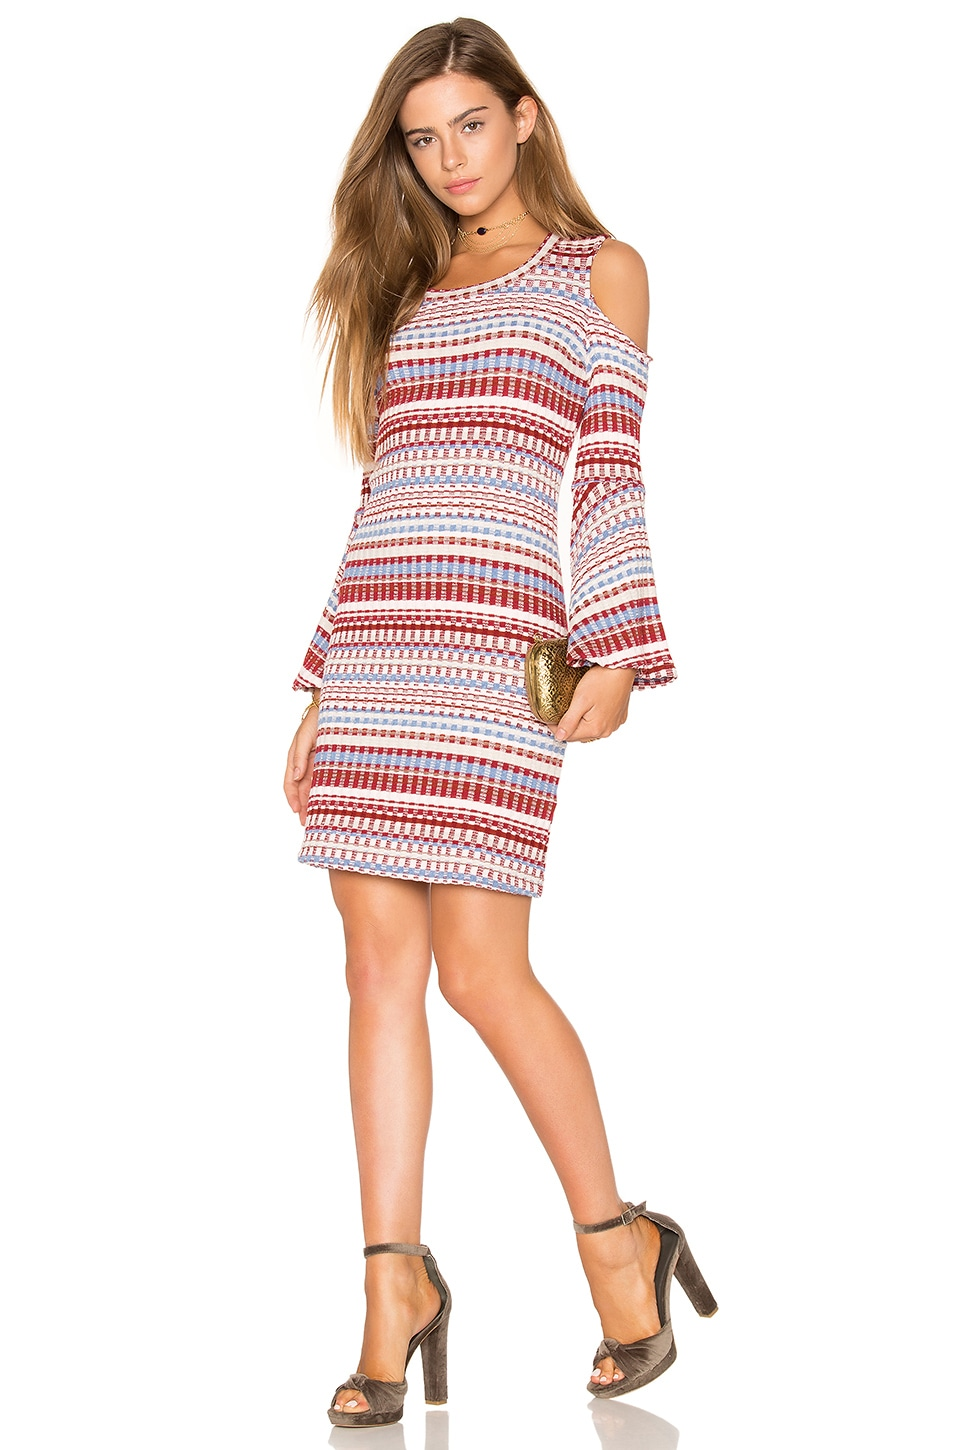 Nomadic Rib Dress by Ella Moss